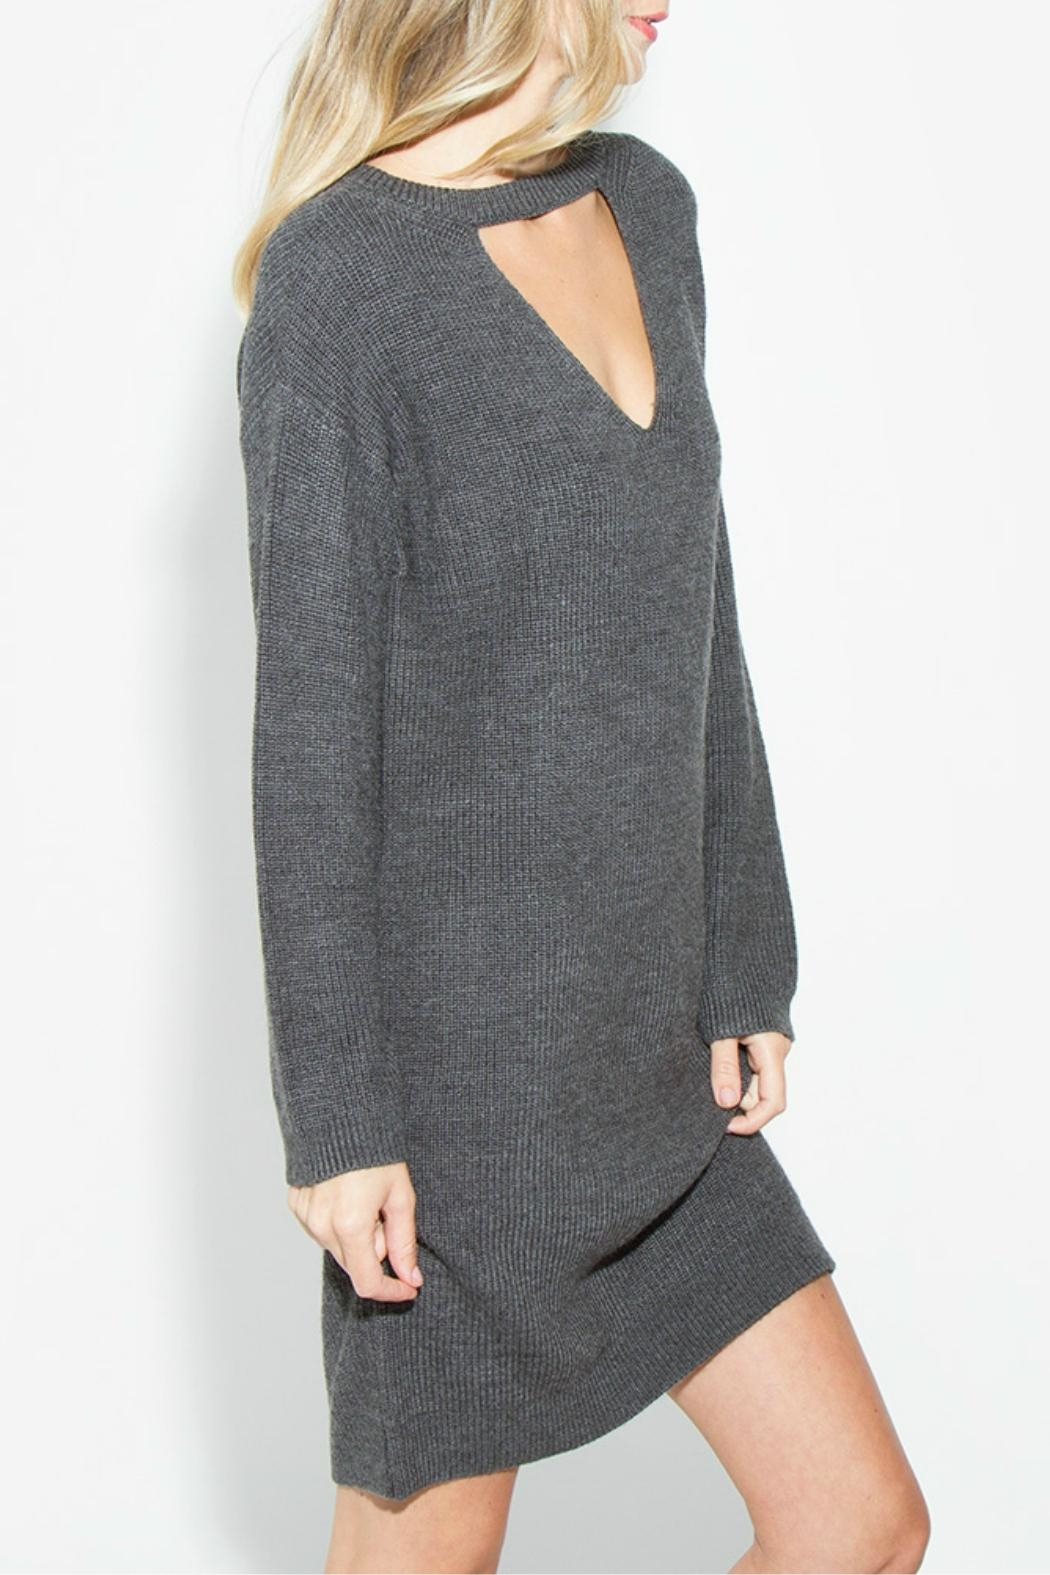 Sugar Lips Grey Sweater Dress - Front Full Image